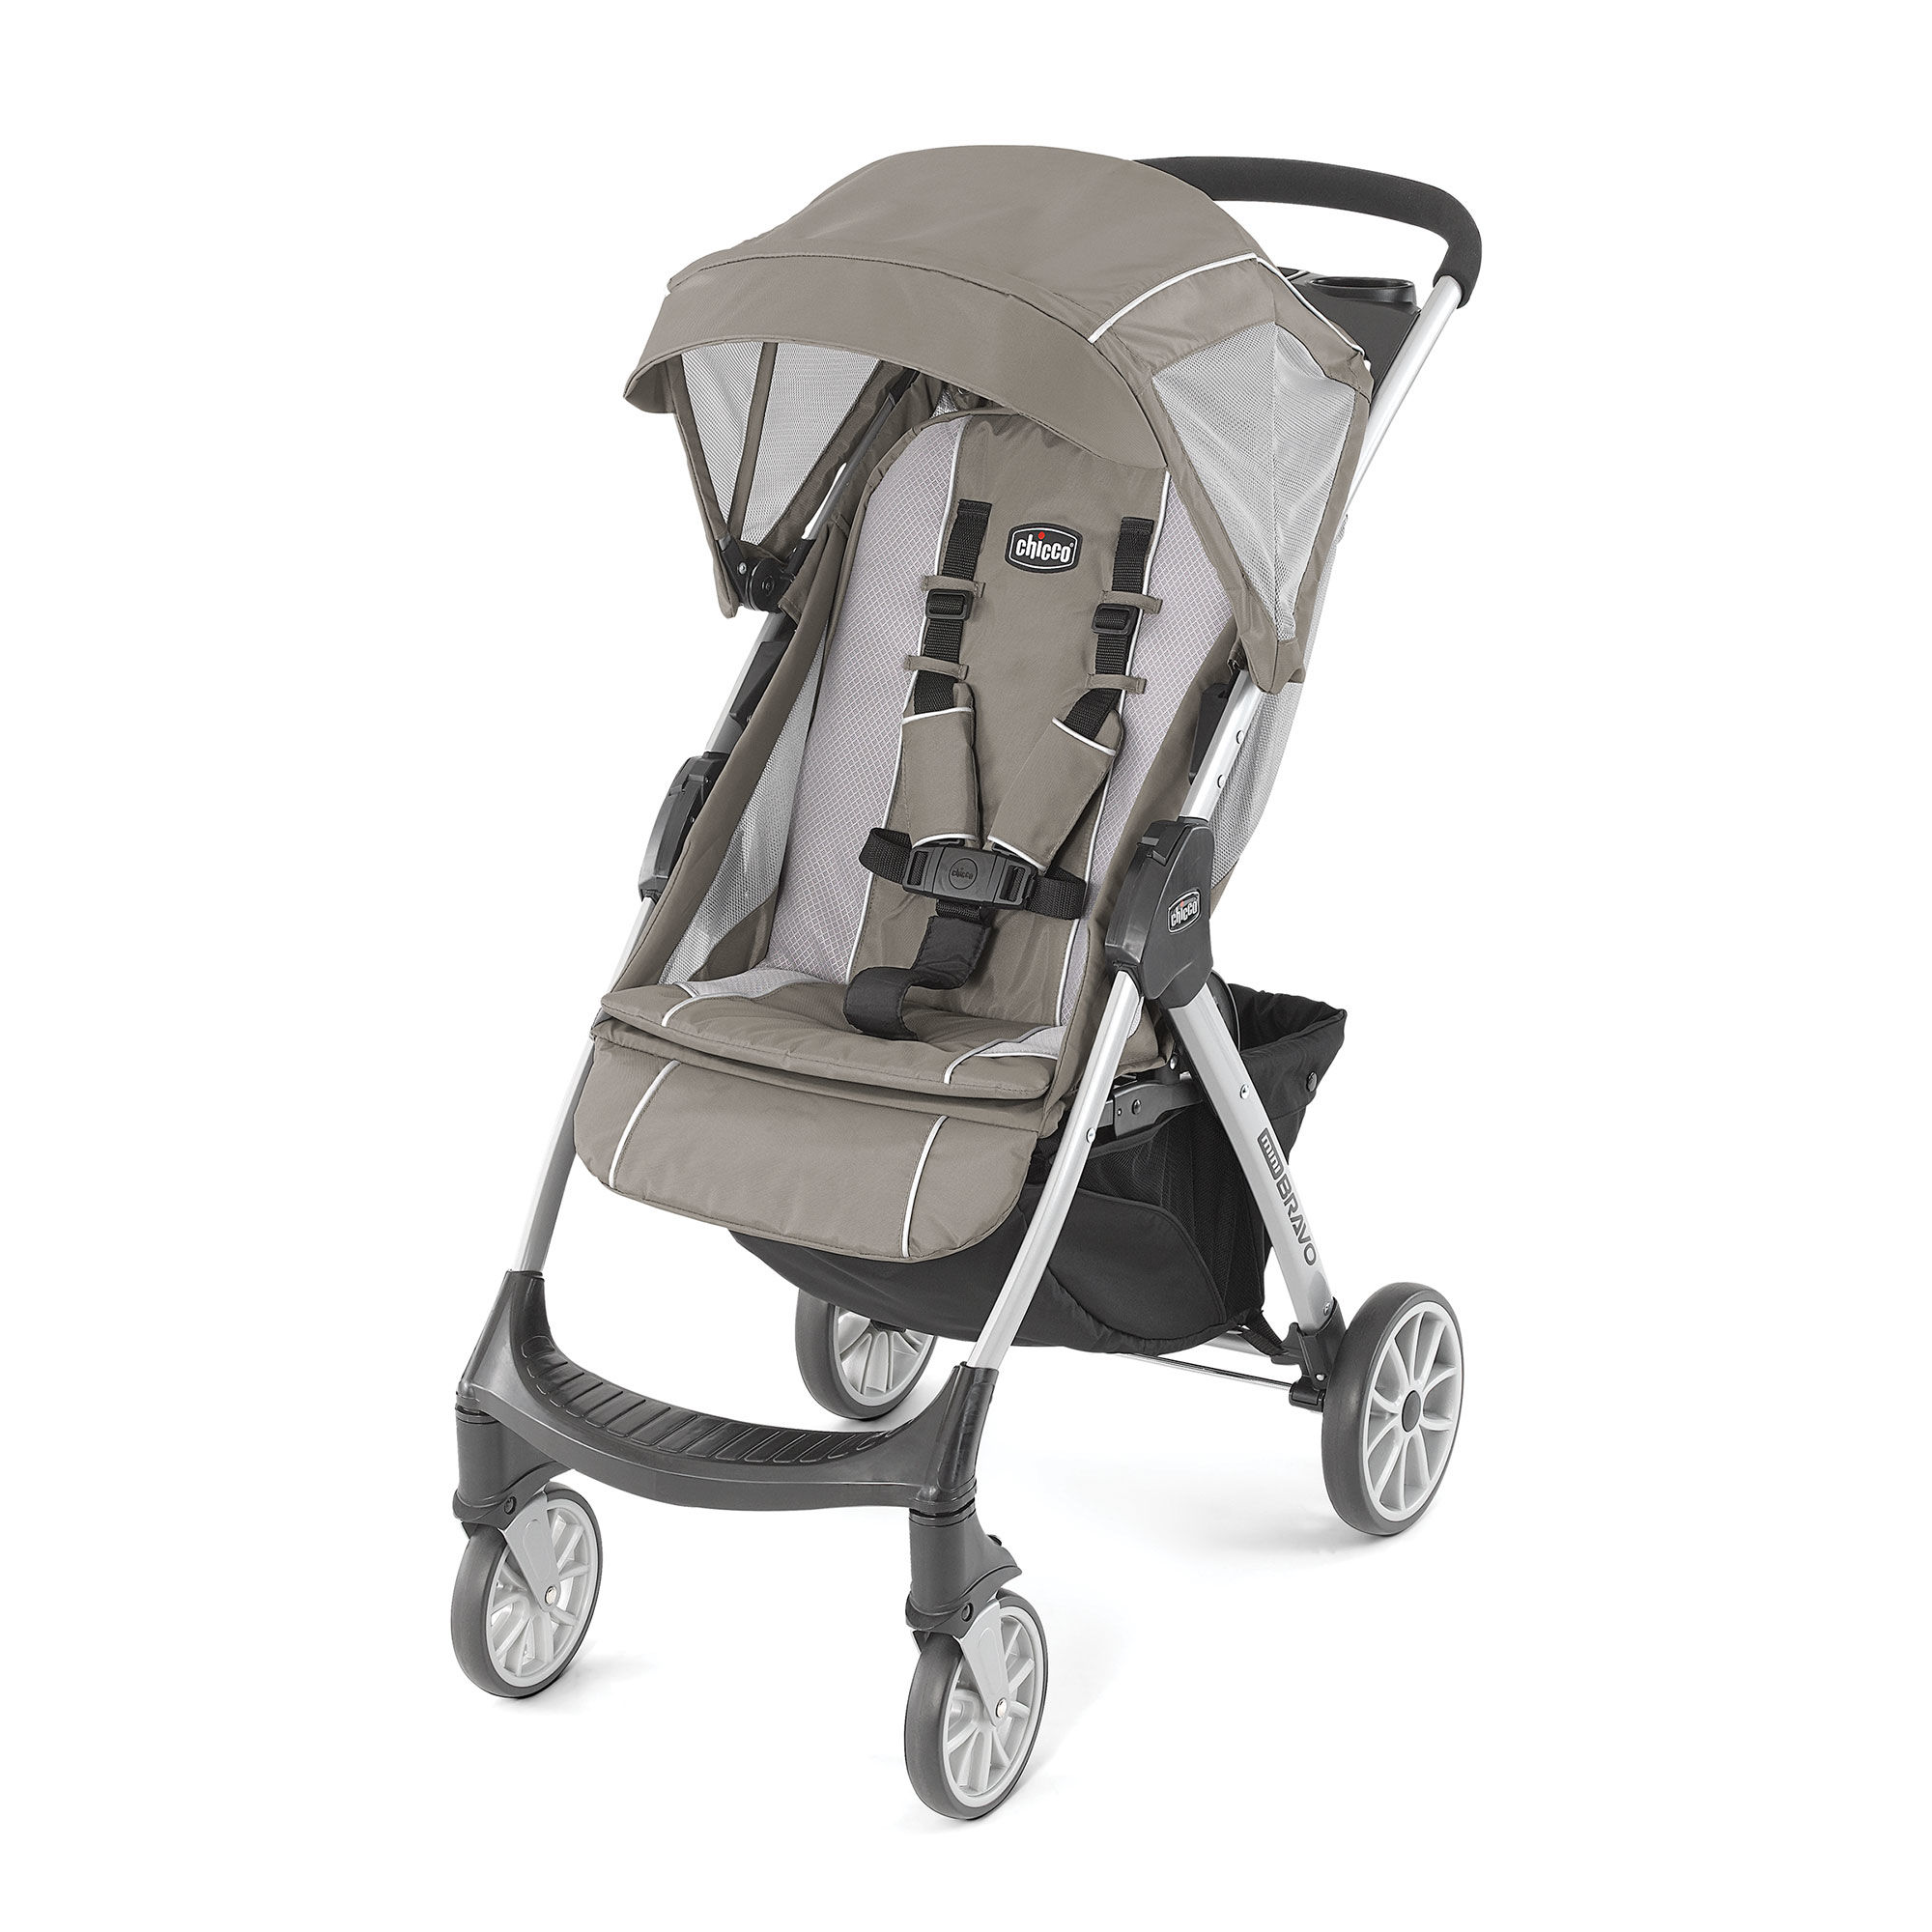 Top Lightweight Travel System Strollers Chicco Mini Bravo Stroller Review Experienced Mommy